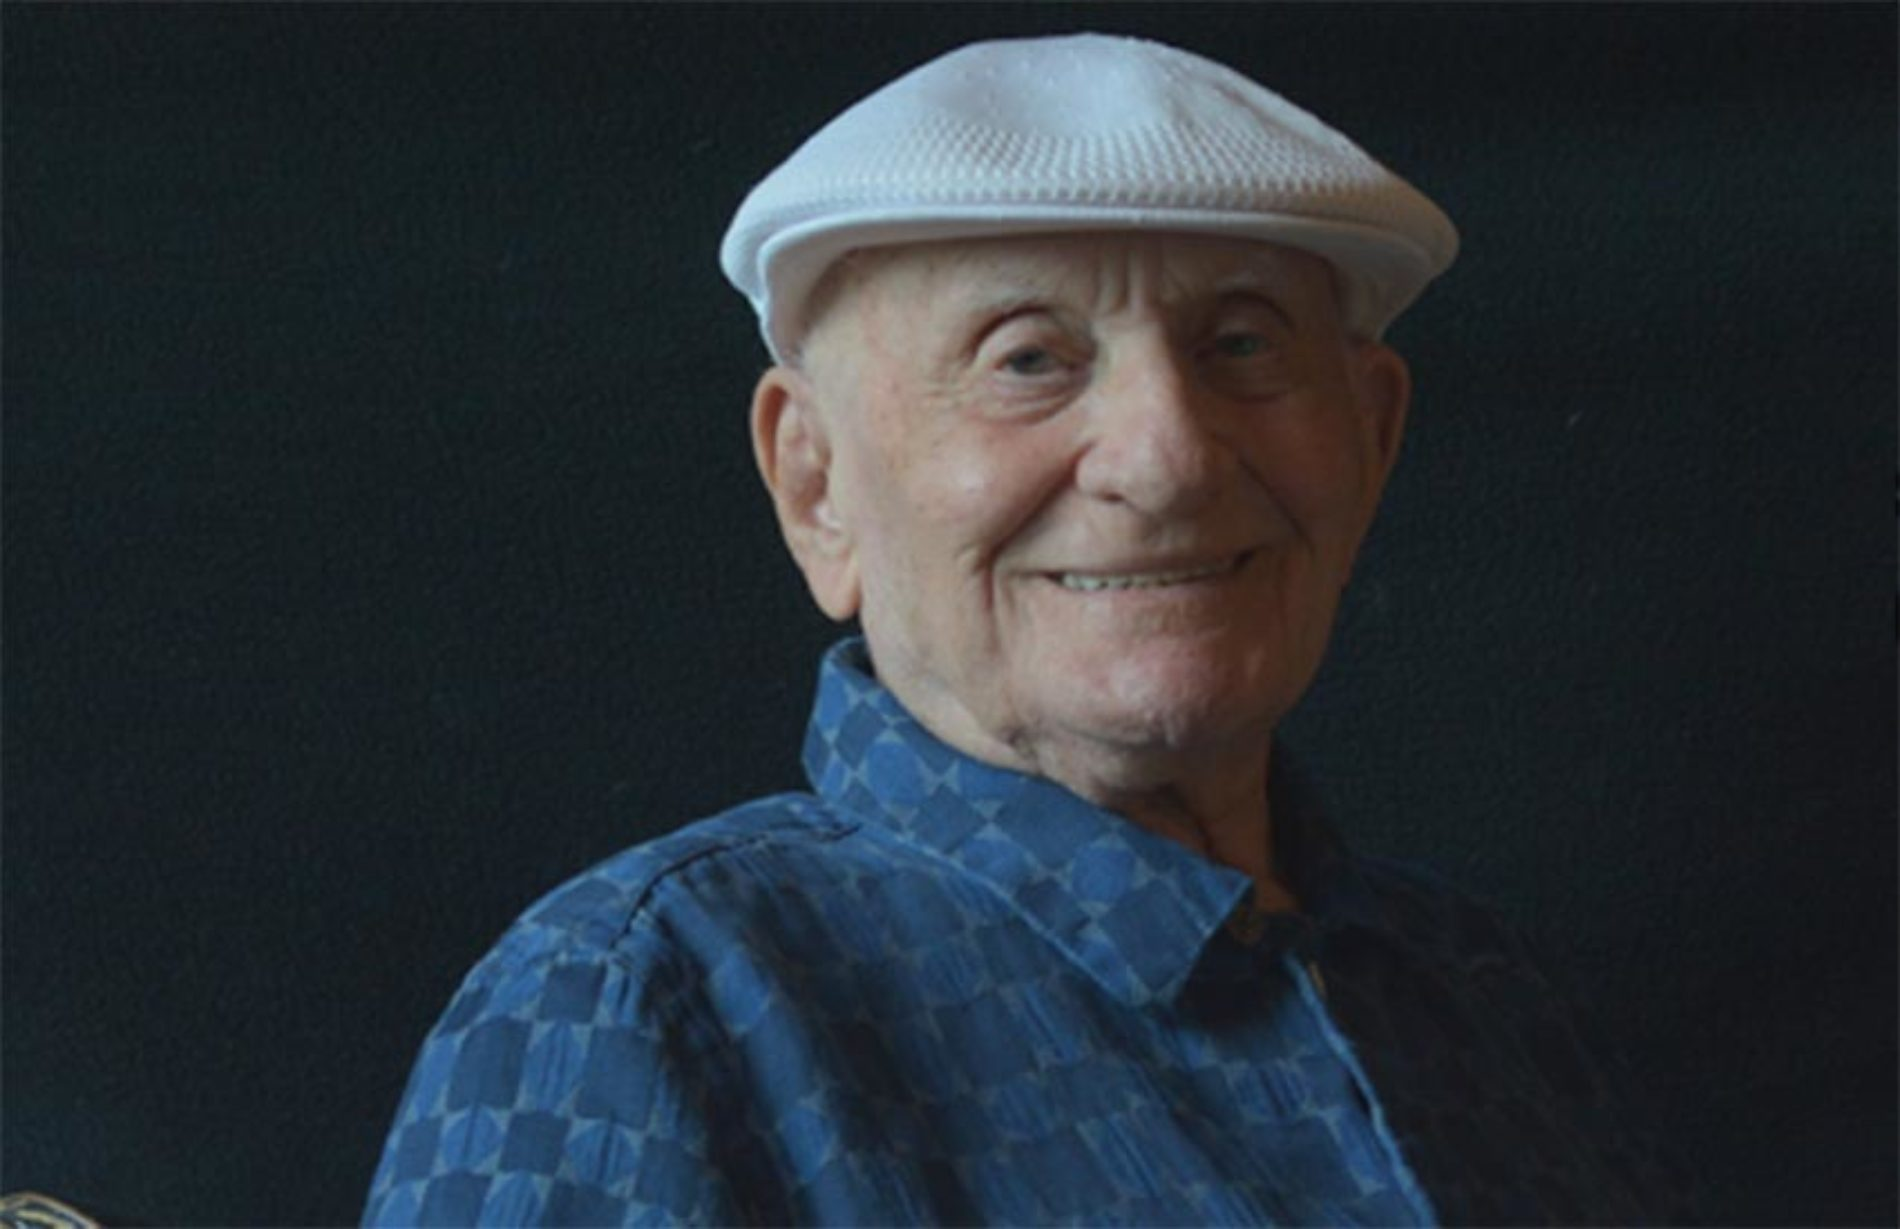 Meet the grandfather who came out at 95 years old